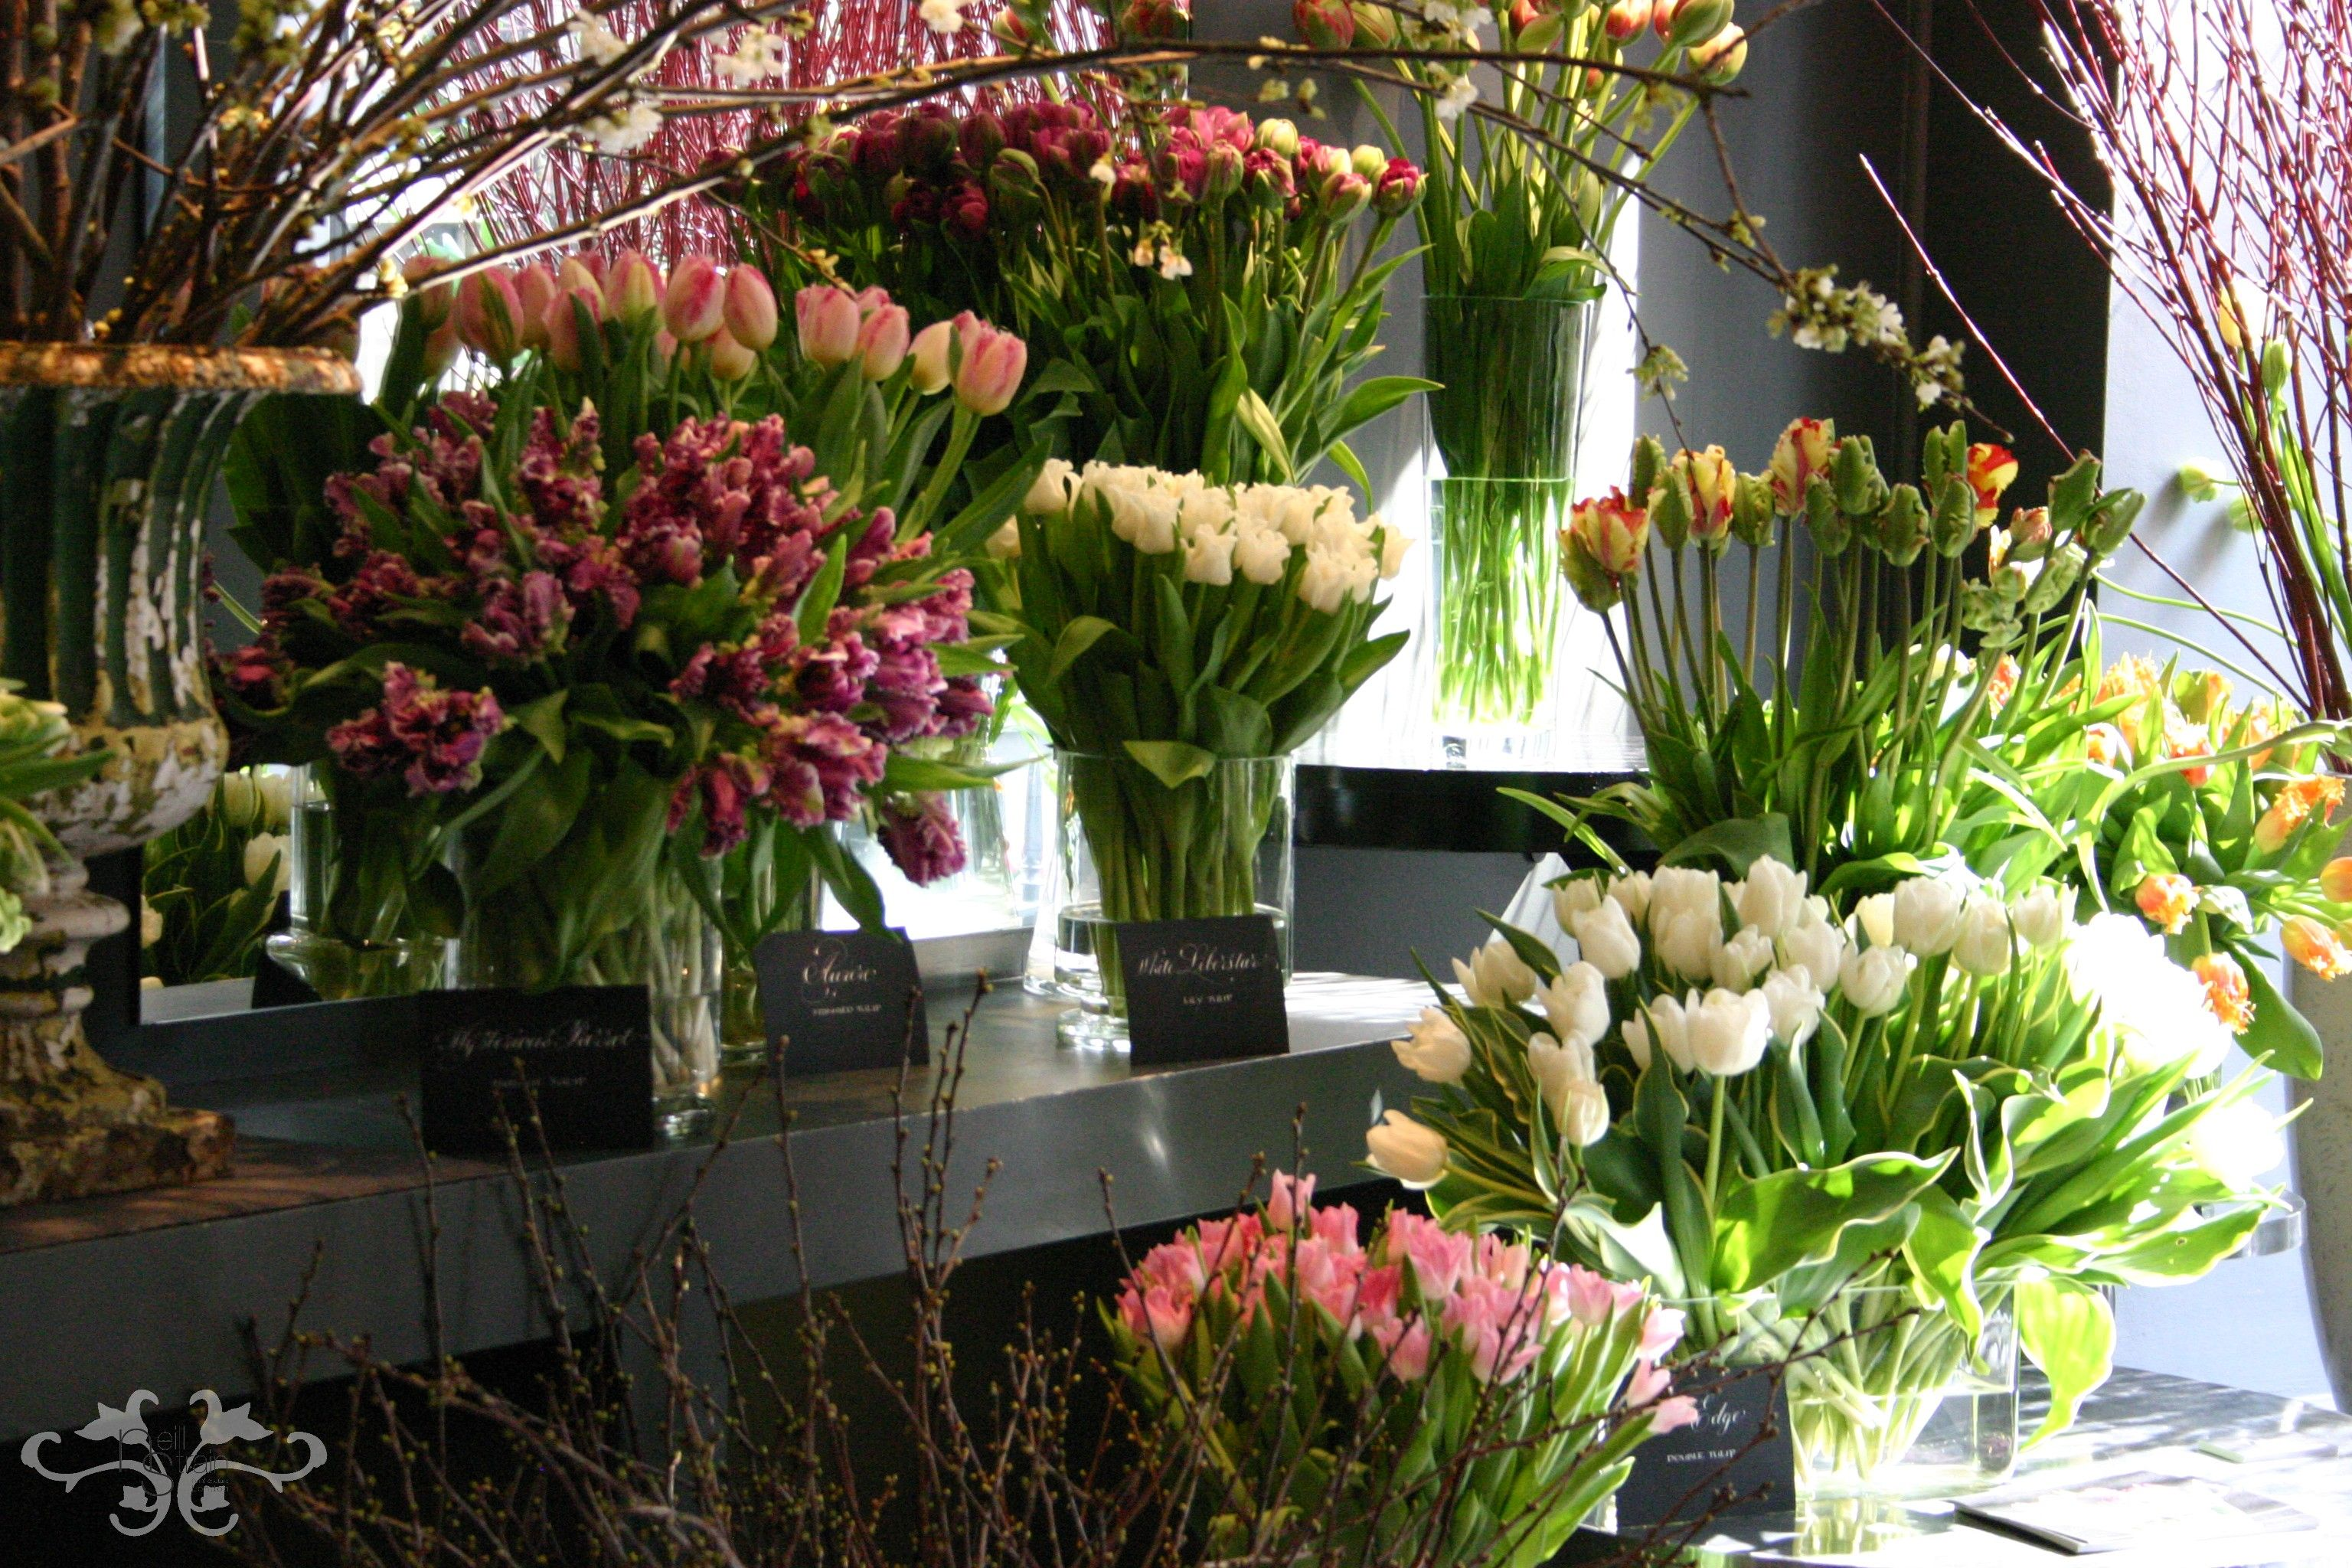 Extraordinary selection of spring flowers to create your personal extraordinary selection of spring flowers to create your personal easter floral decorations of floral gifts at neill strain floral couture london negle Images